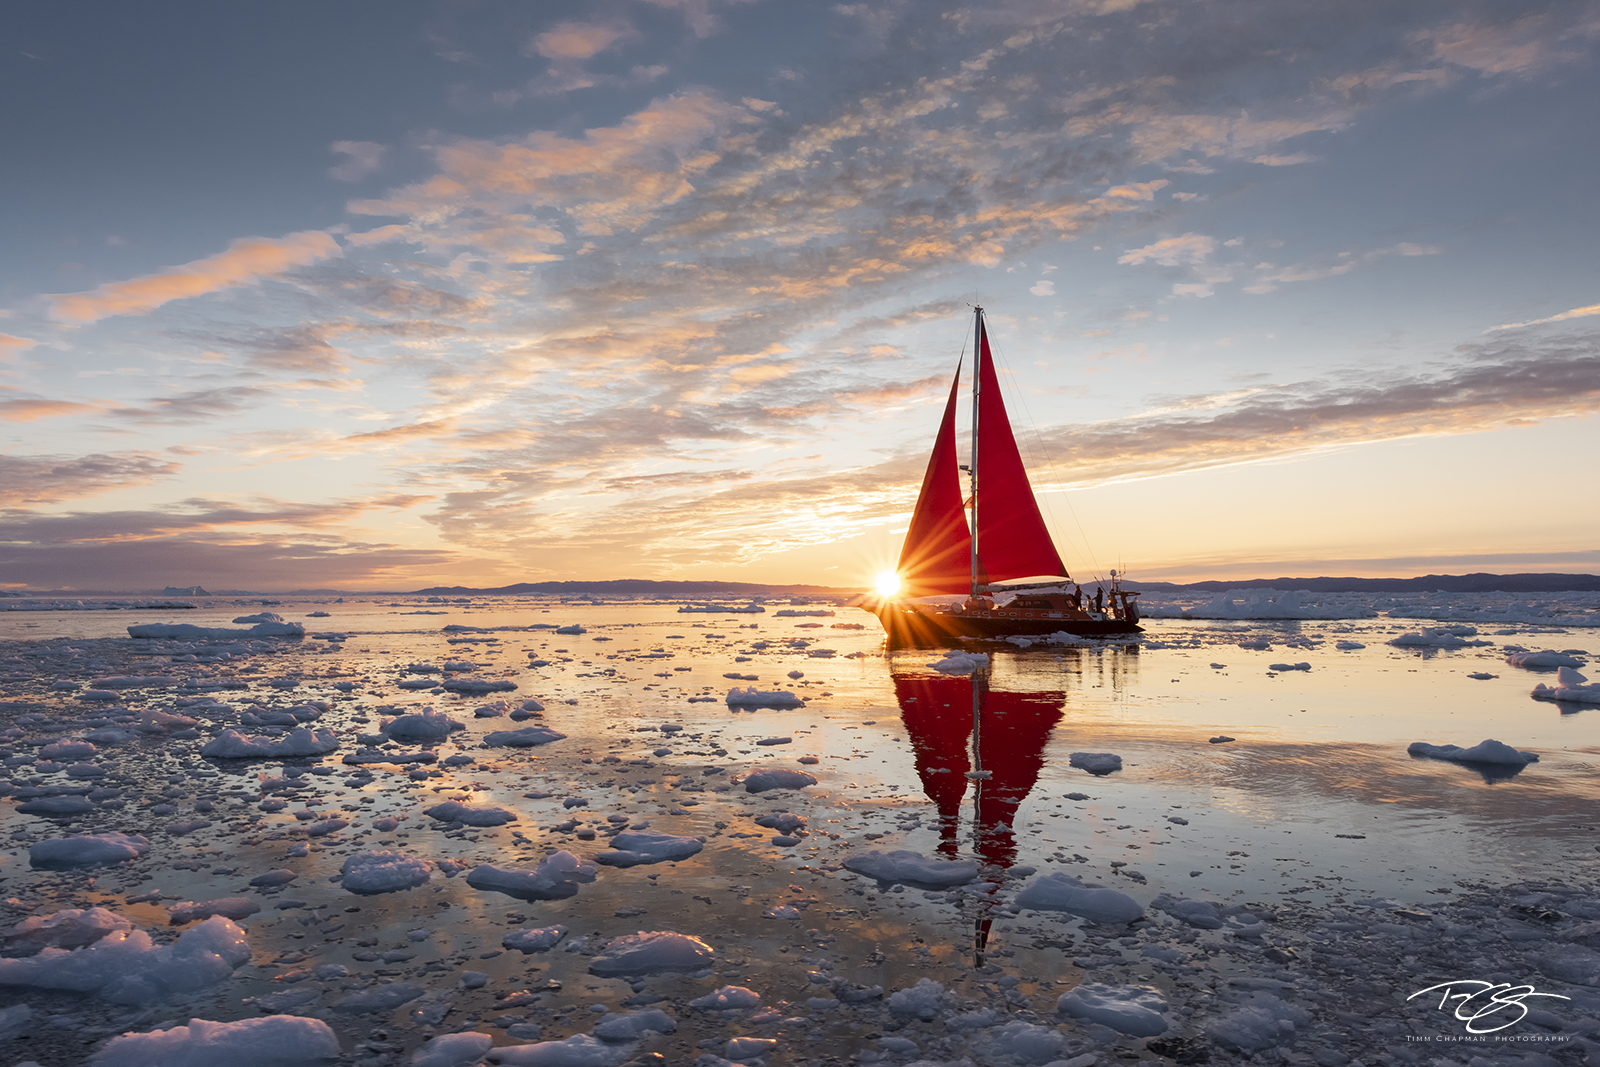 ice; iceberg; disko bay; dusk; twilight; predawn; sunrise; icefjord; ship; sailboat; sailing; schooner; sails; red sails;  scarlet sails, sunburst, yacht, photo